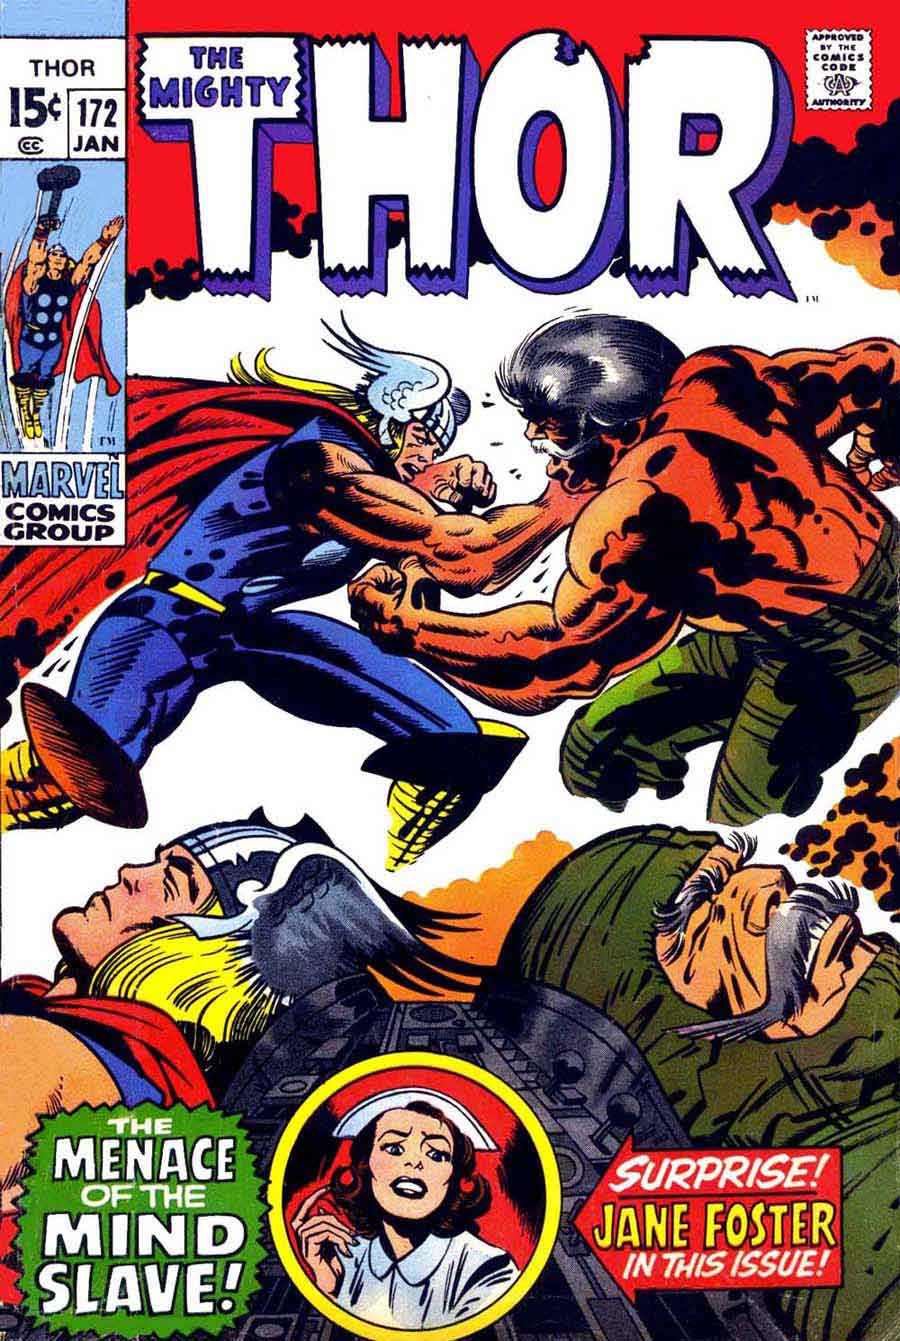 Thor v1 #172 marvel comic book cover art by Jack Kirby